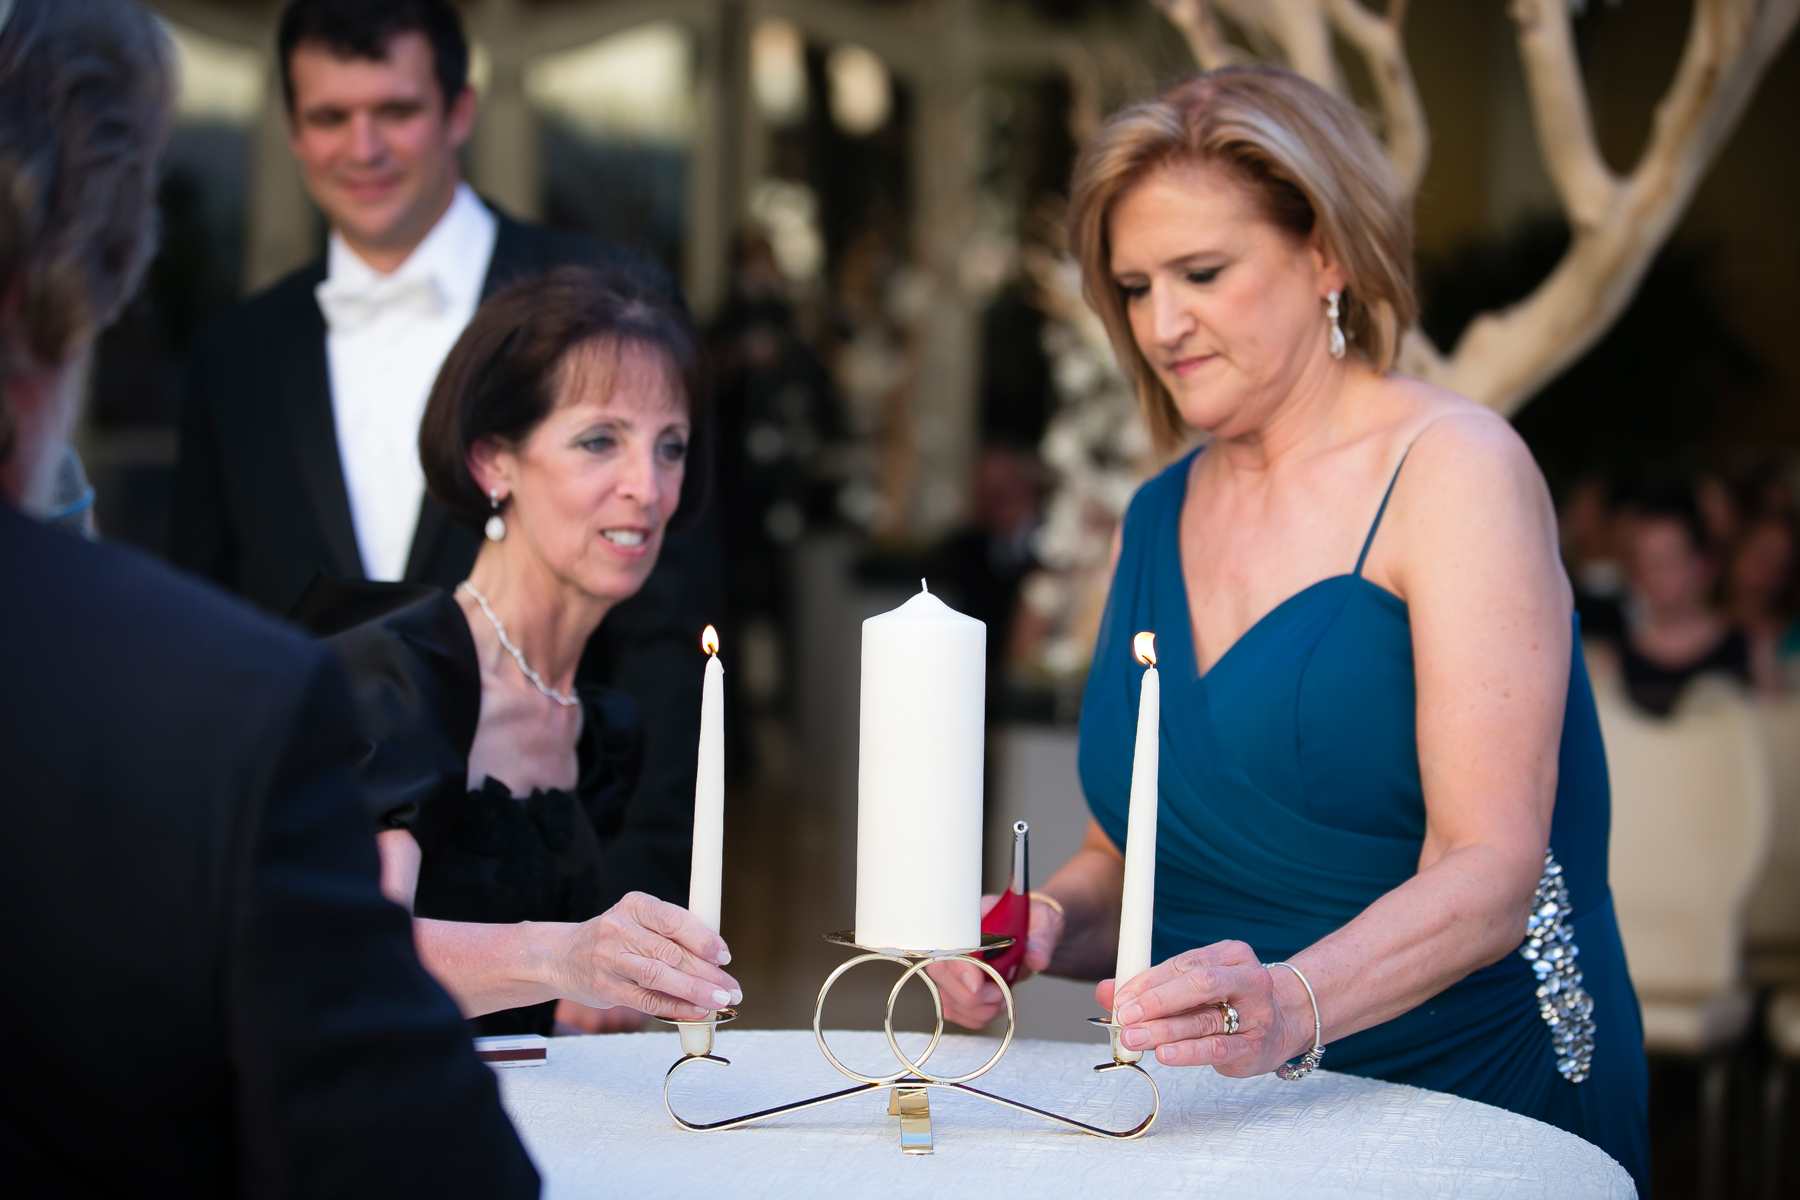 The mother of the bride and groom lit the tapes of the unity candle.   Wedding Venue: Bellagio Las Vegas.  Location: The Grand Patio. Flowers & Decor by Naakiti Floral . Photo by www.ronmiller.com . Las Vegas Wedding Planner: Andrea Eppolito Events .